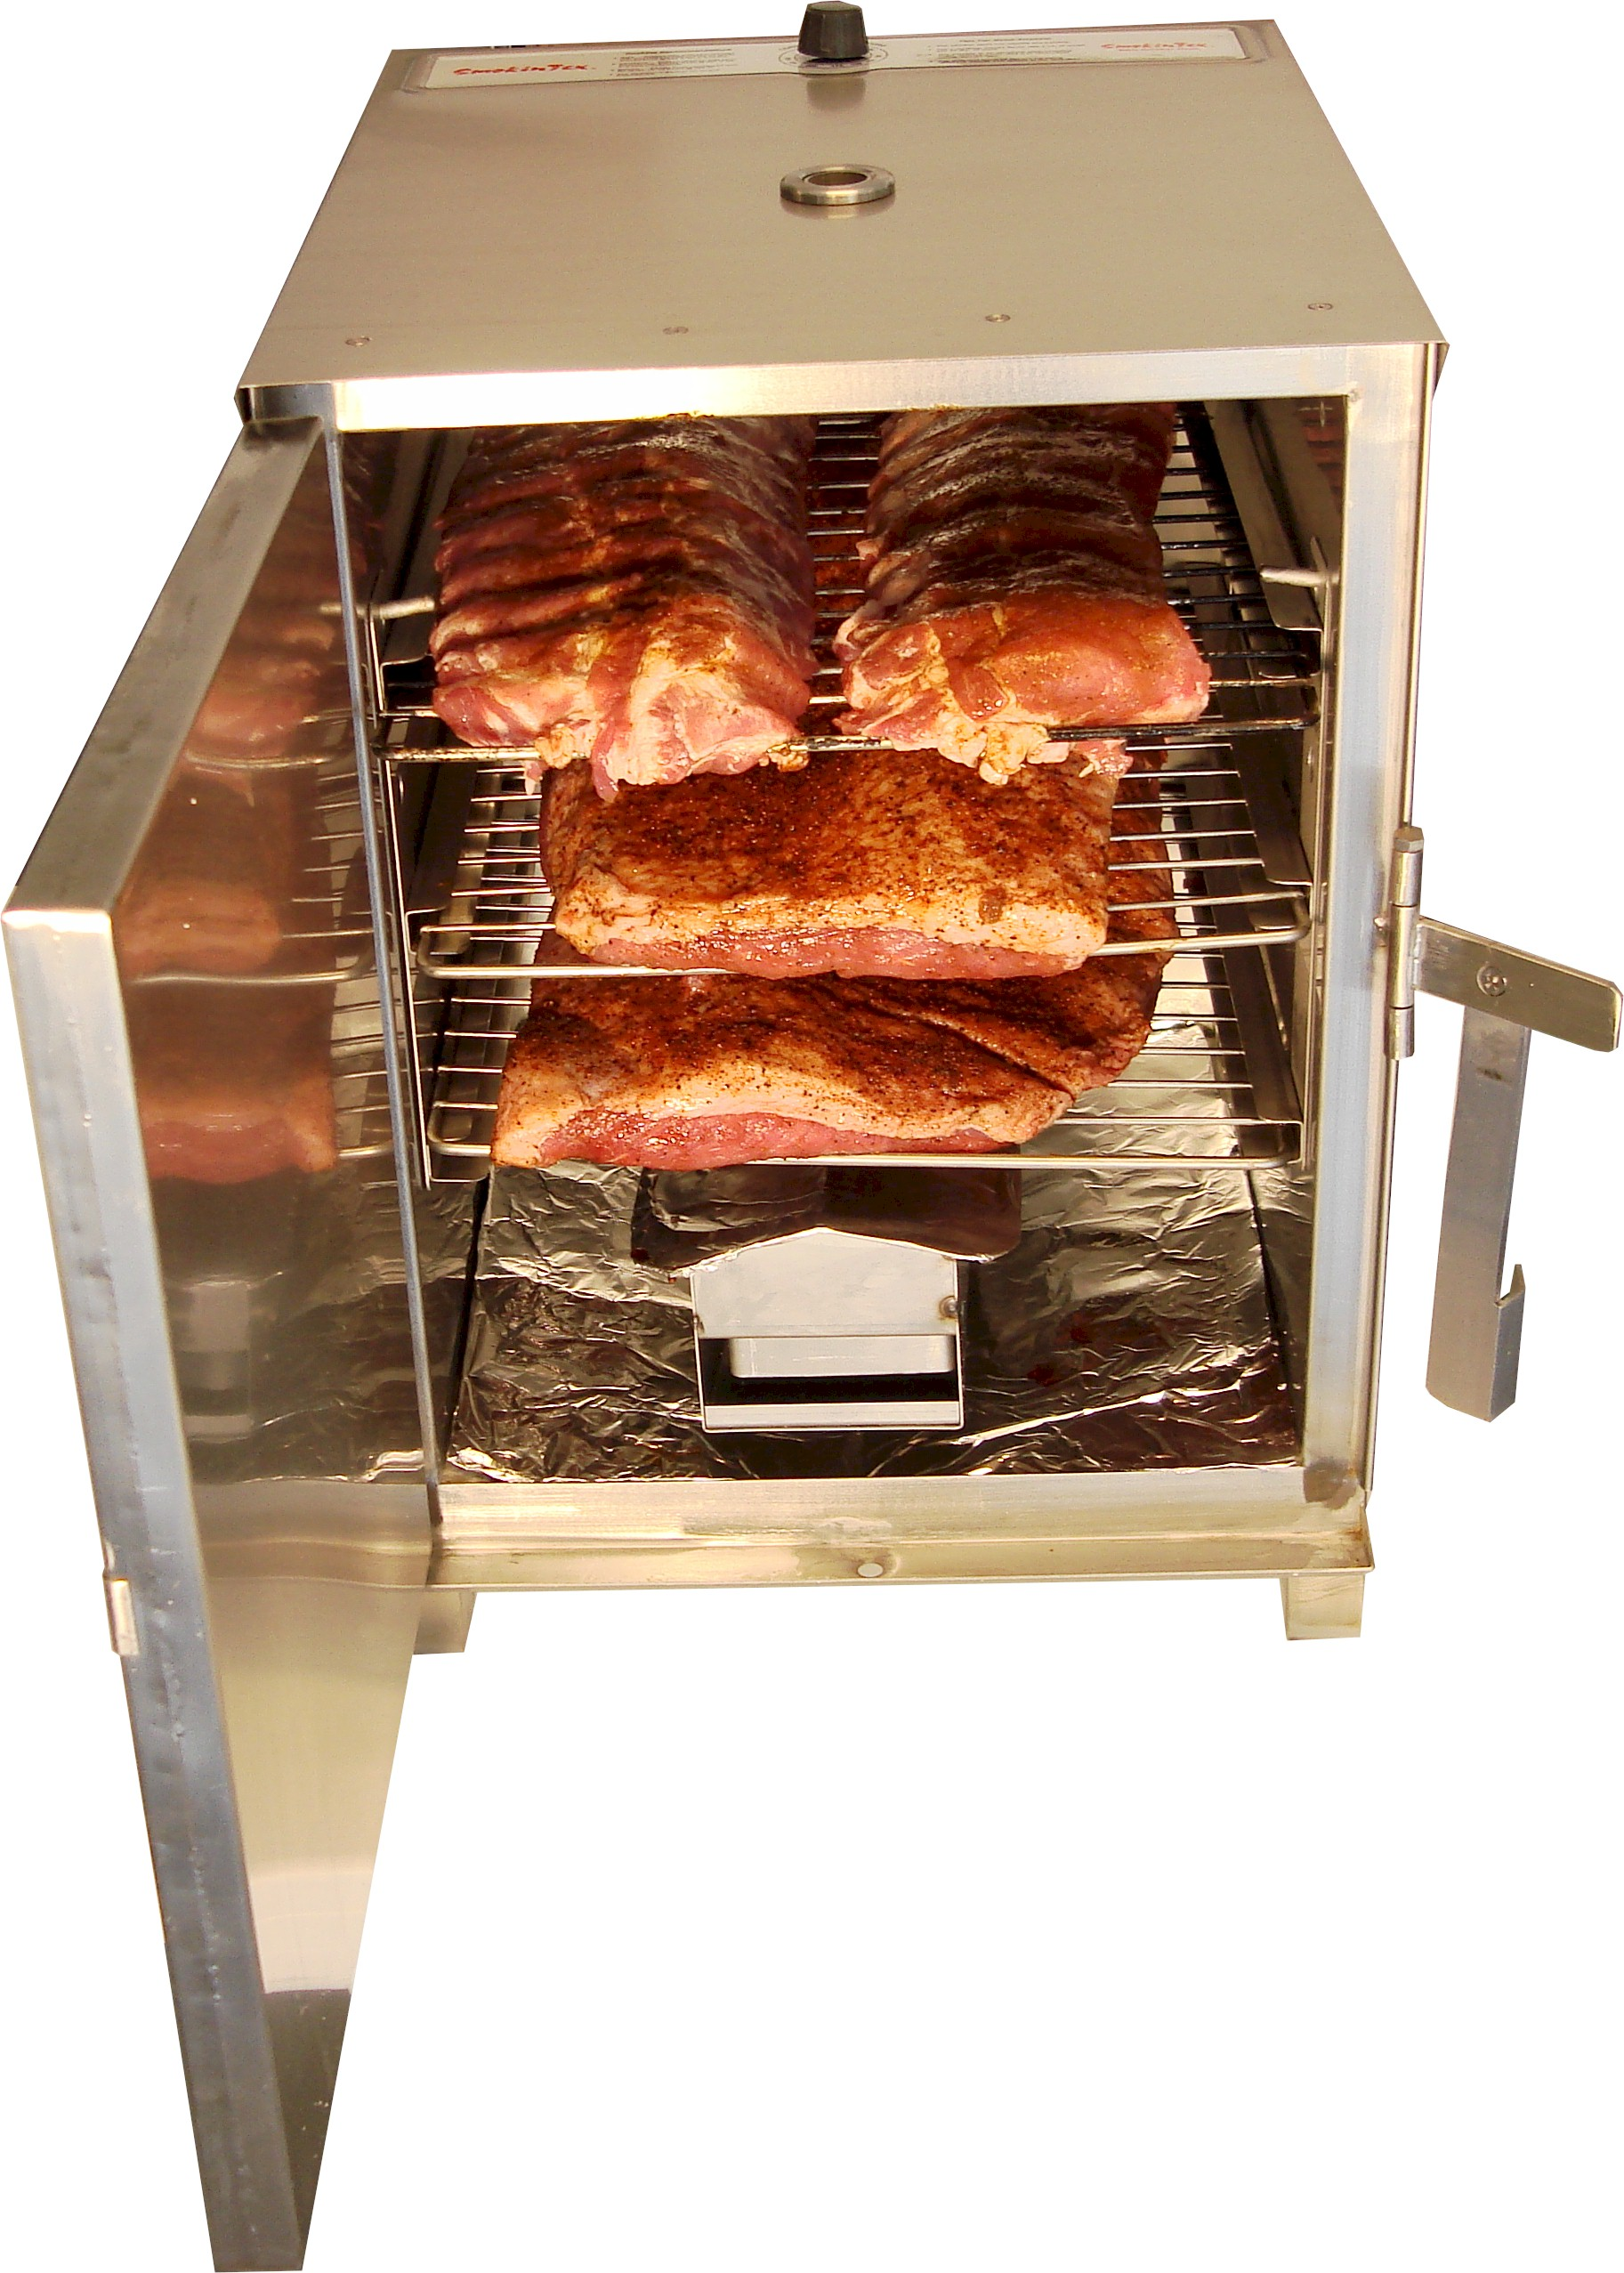 SmokinTex BBQ Electric Meat Smoker Model 1100